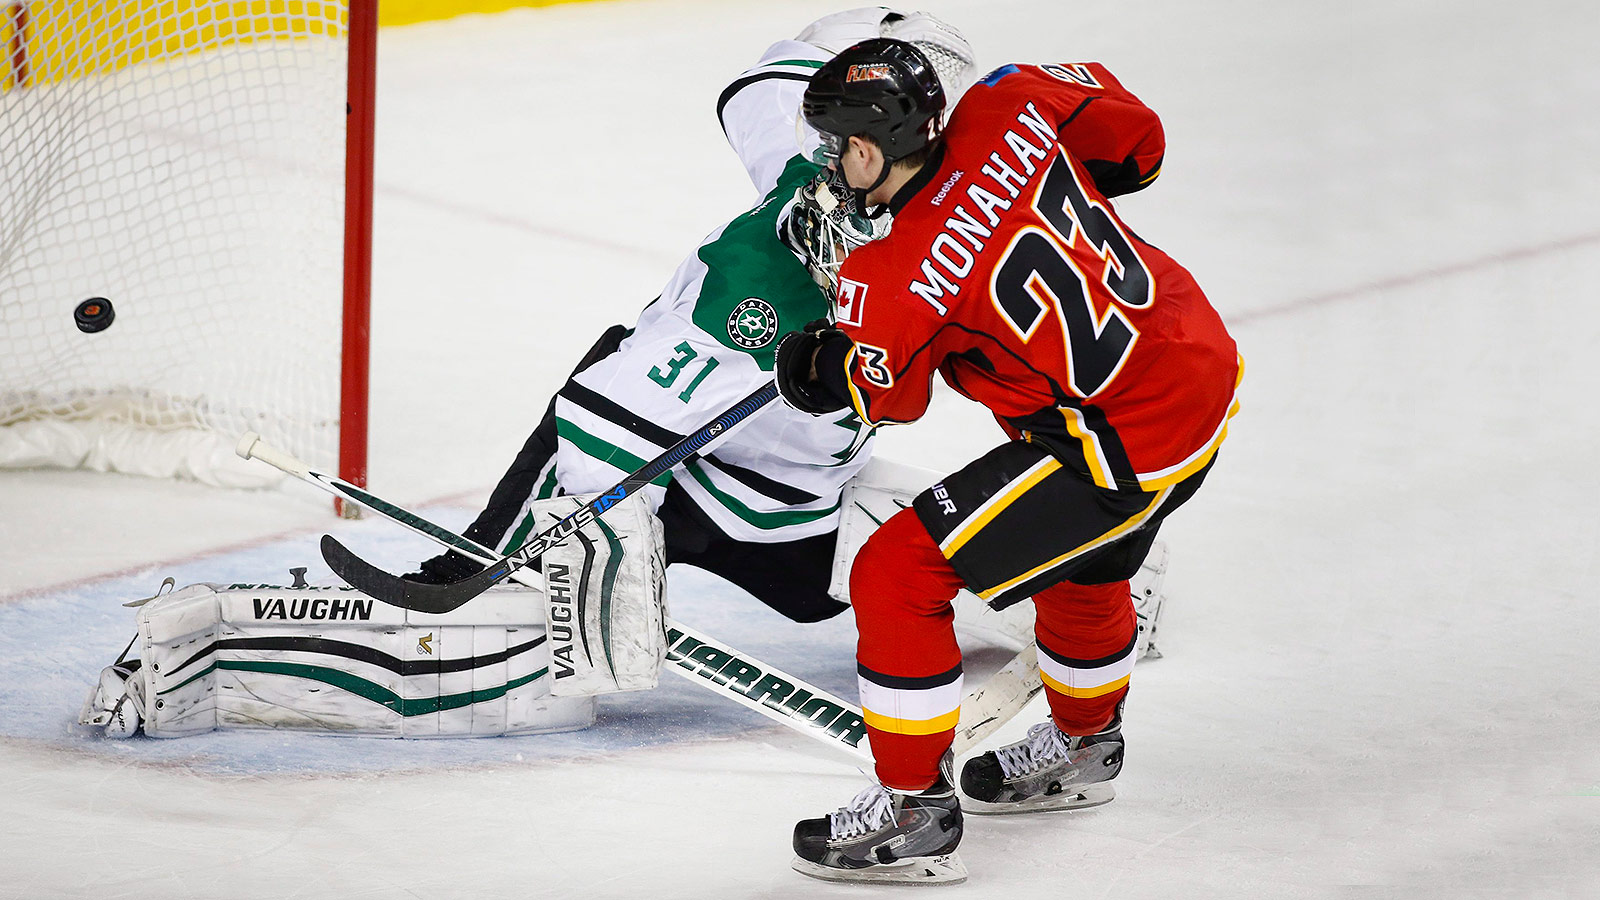 Monahan rallies Flames from 3-0 hole, beats Stars with shootout winner